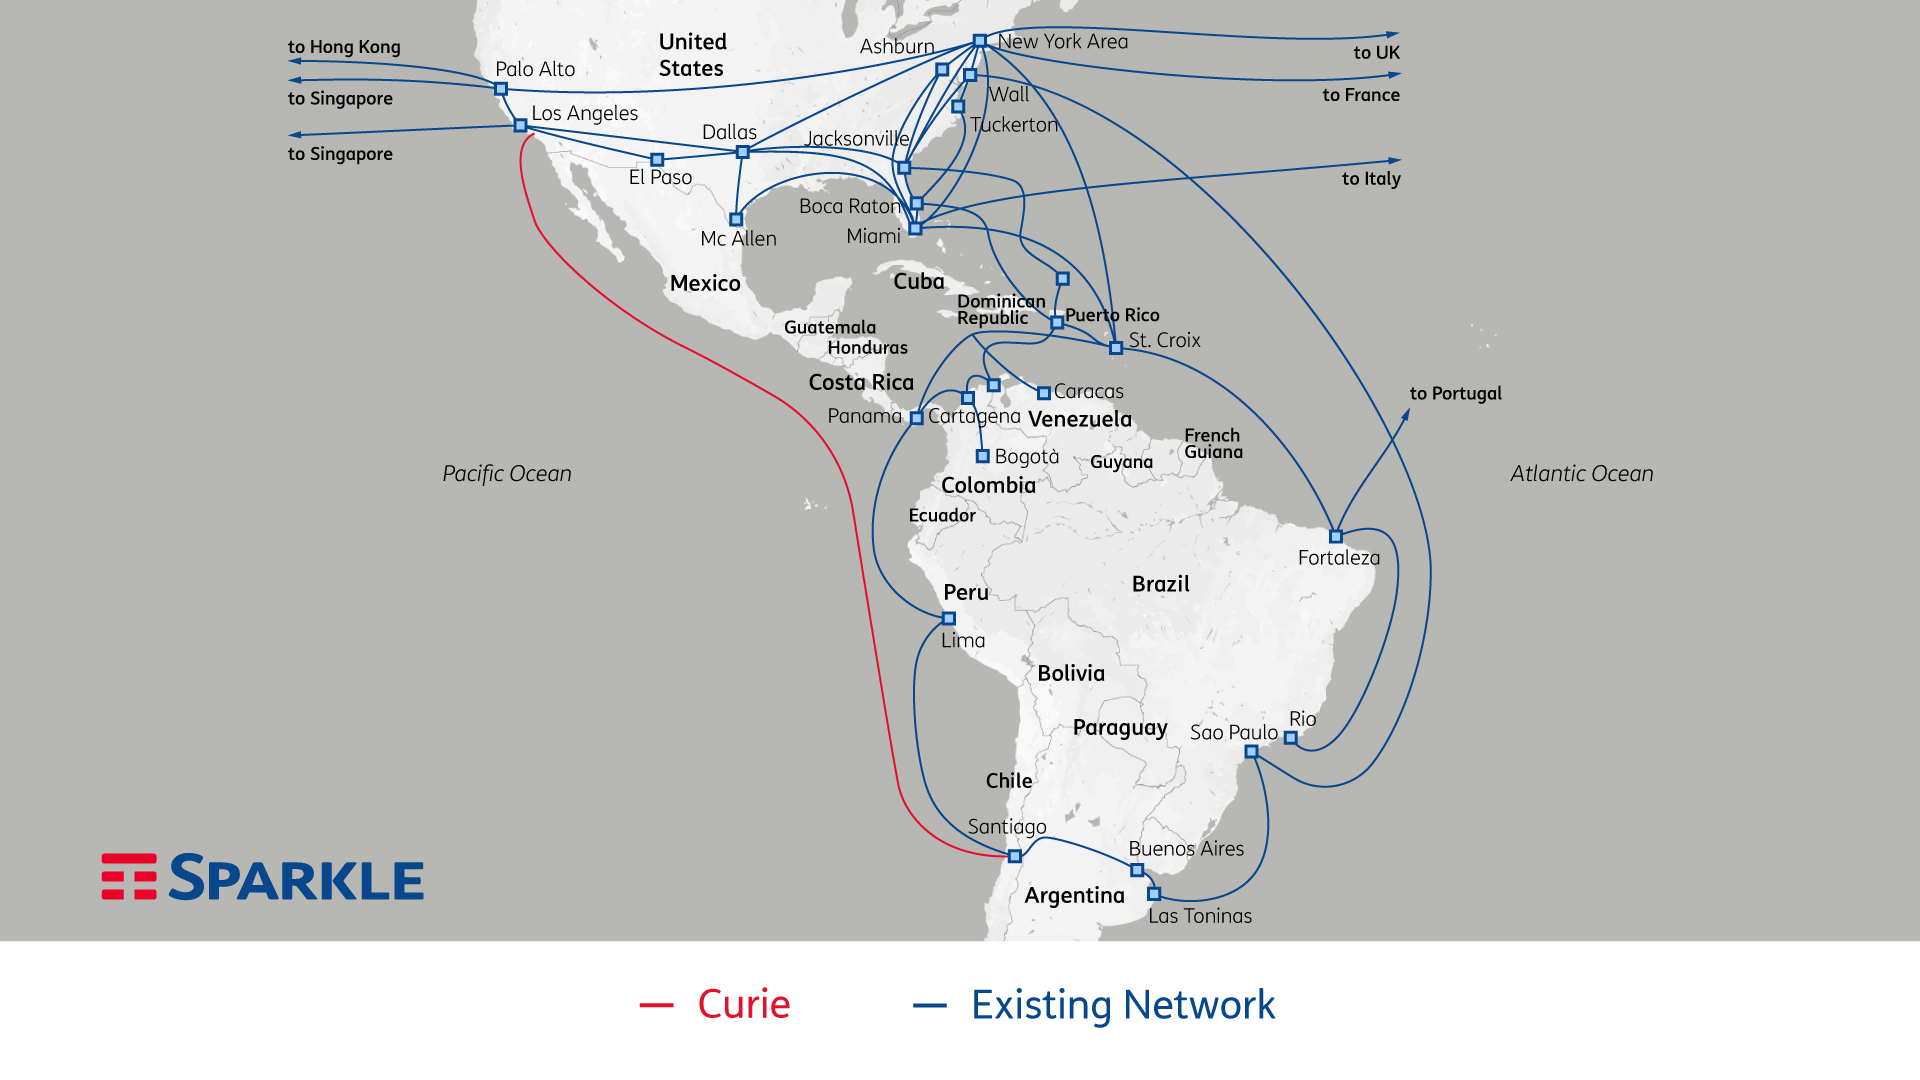 Sparkle add Curie cable system to its network